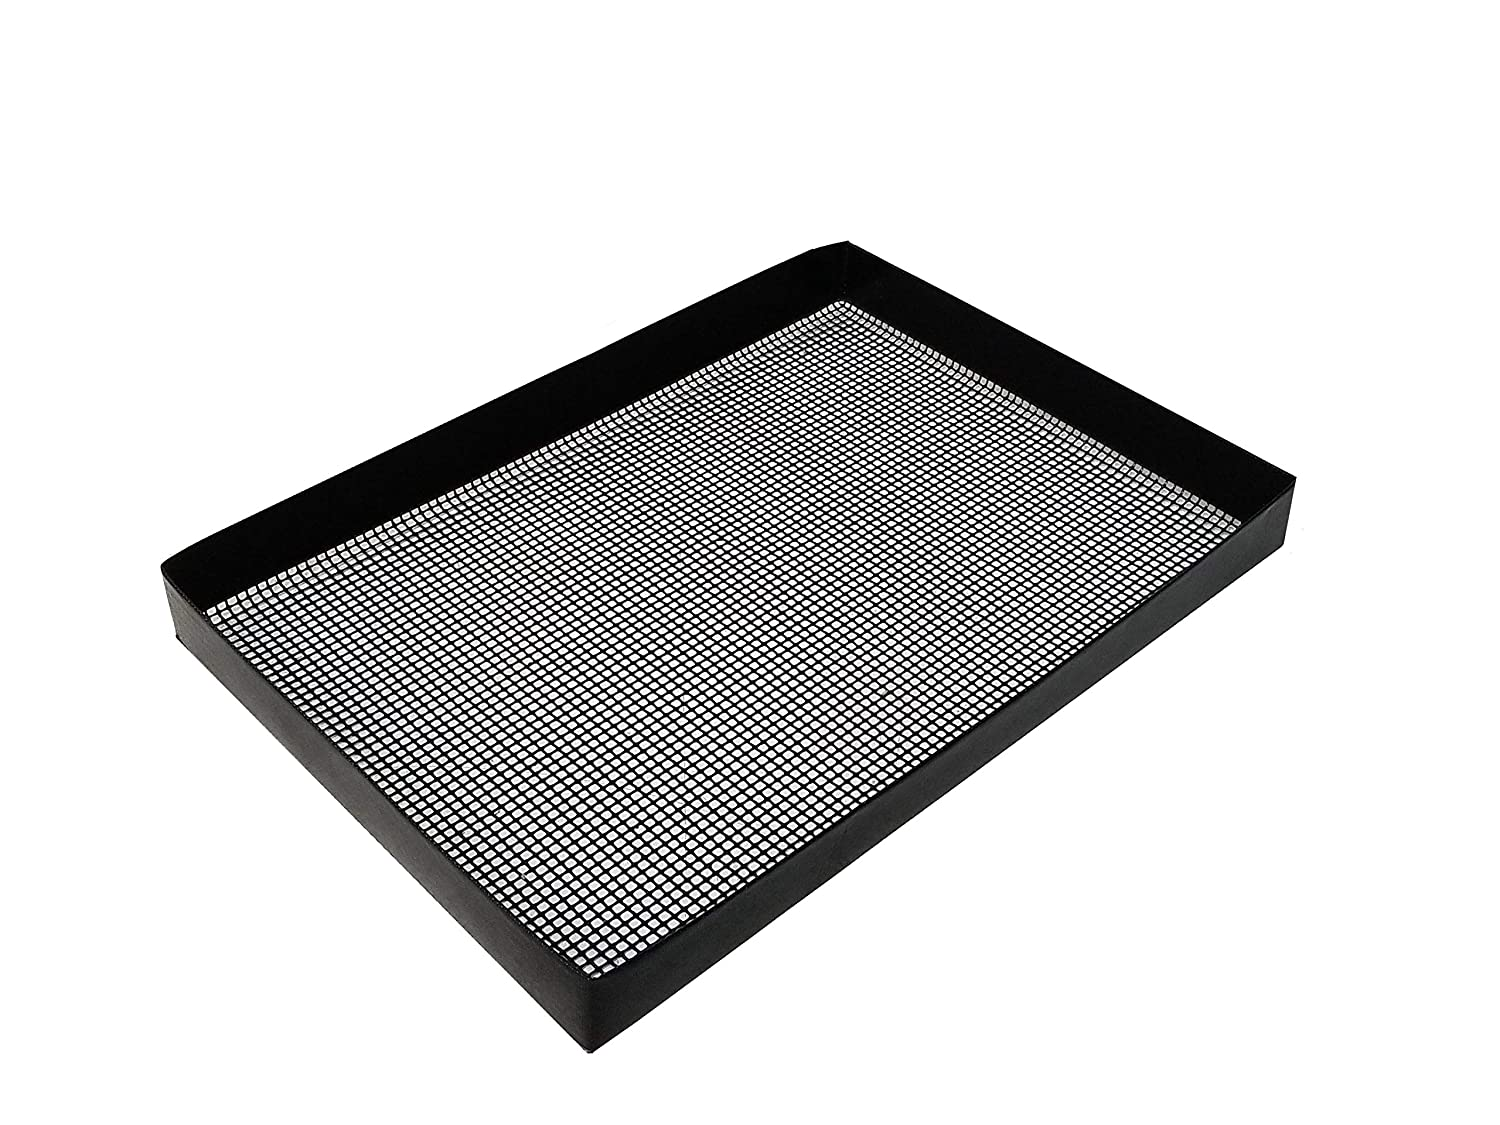 """11.675"""" X 16.5"""" x 1.5"""" PTFE Wide Mesh Oven basket for TurboChef, Merrychef, and Amana, can also be used in smokers and grills"""